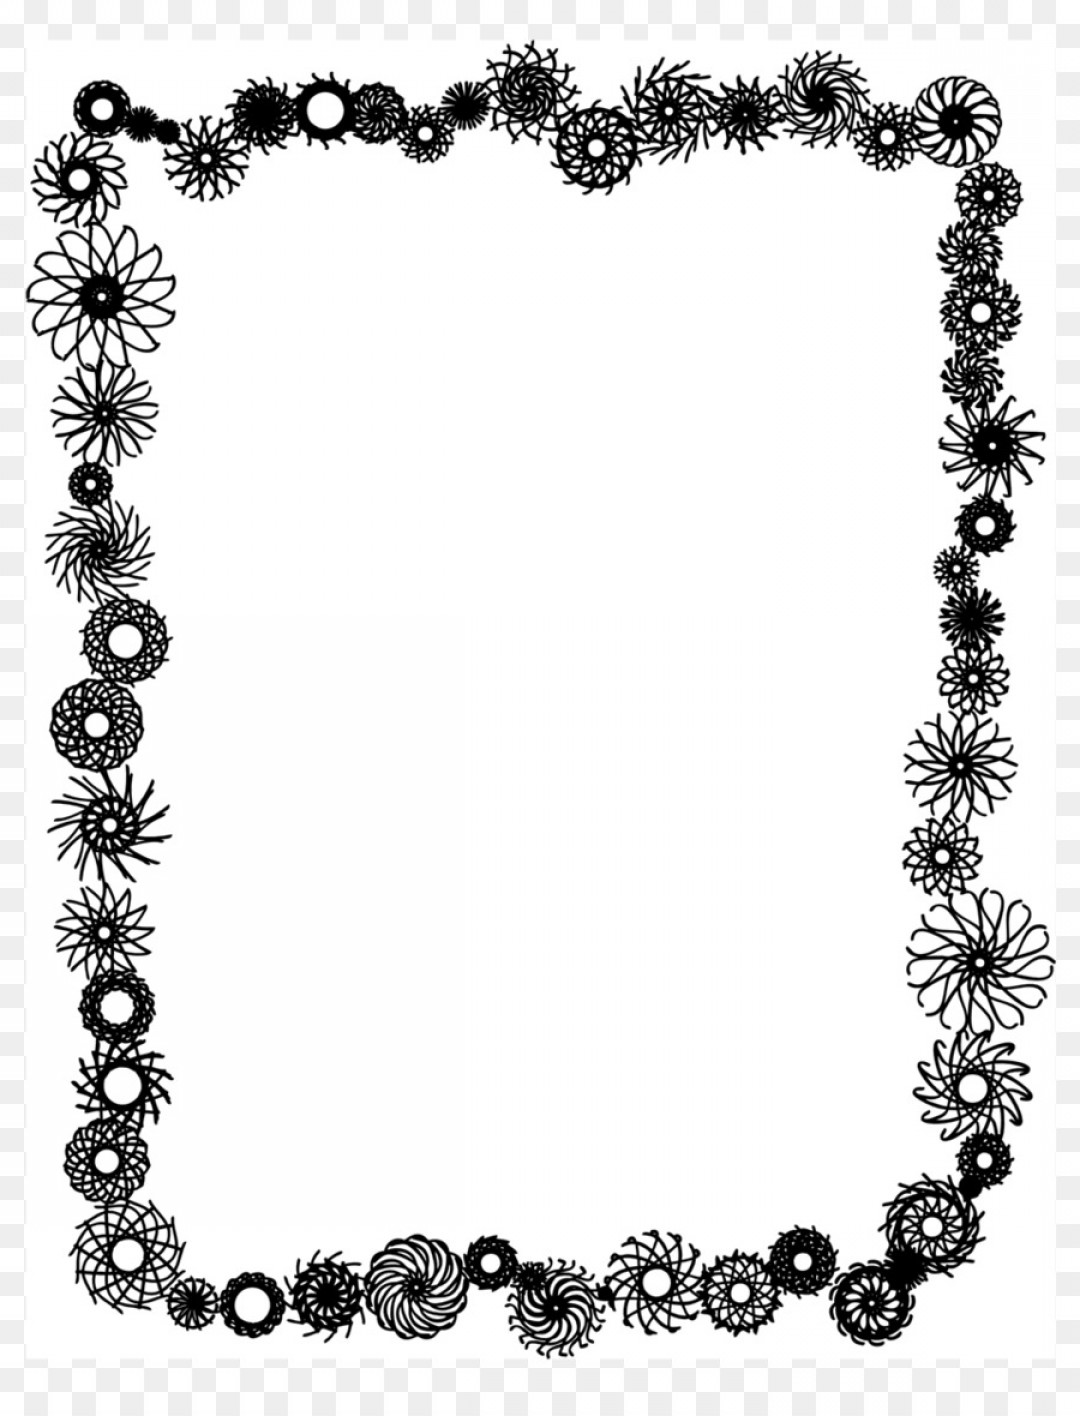 Vector Boarders Clip: Png Borders And Frames Borders Clip Art Vector Graphic